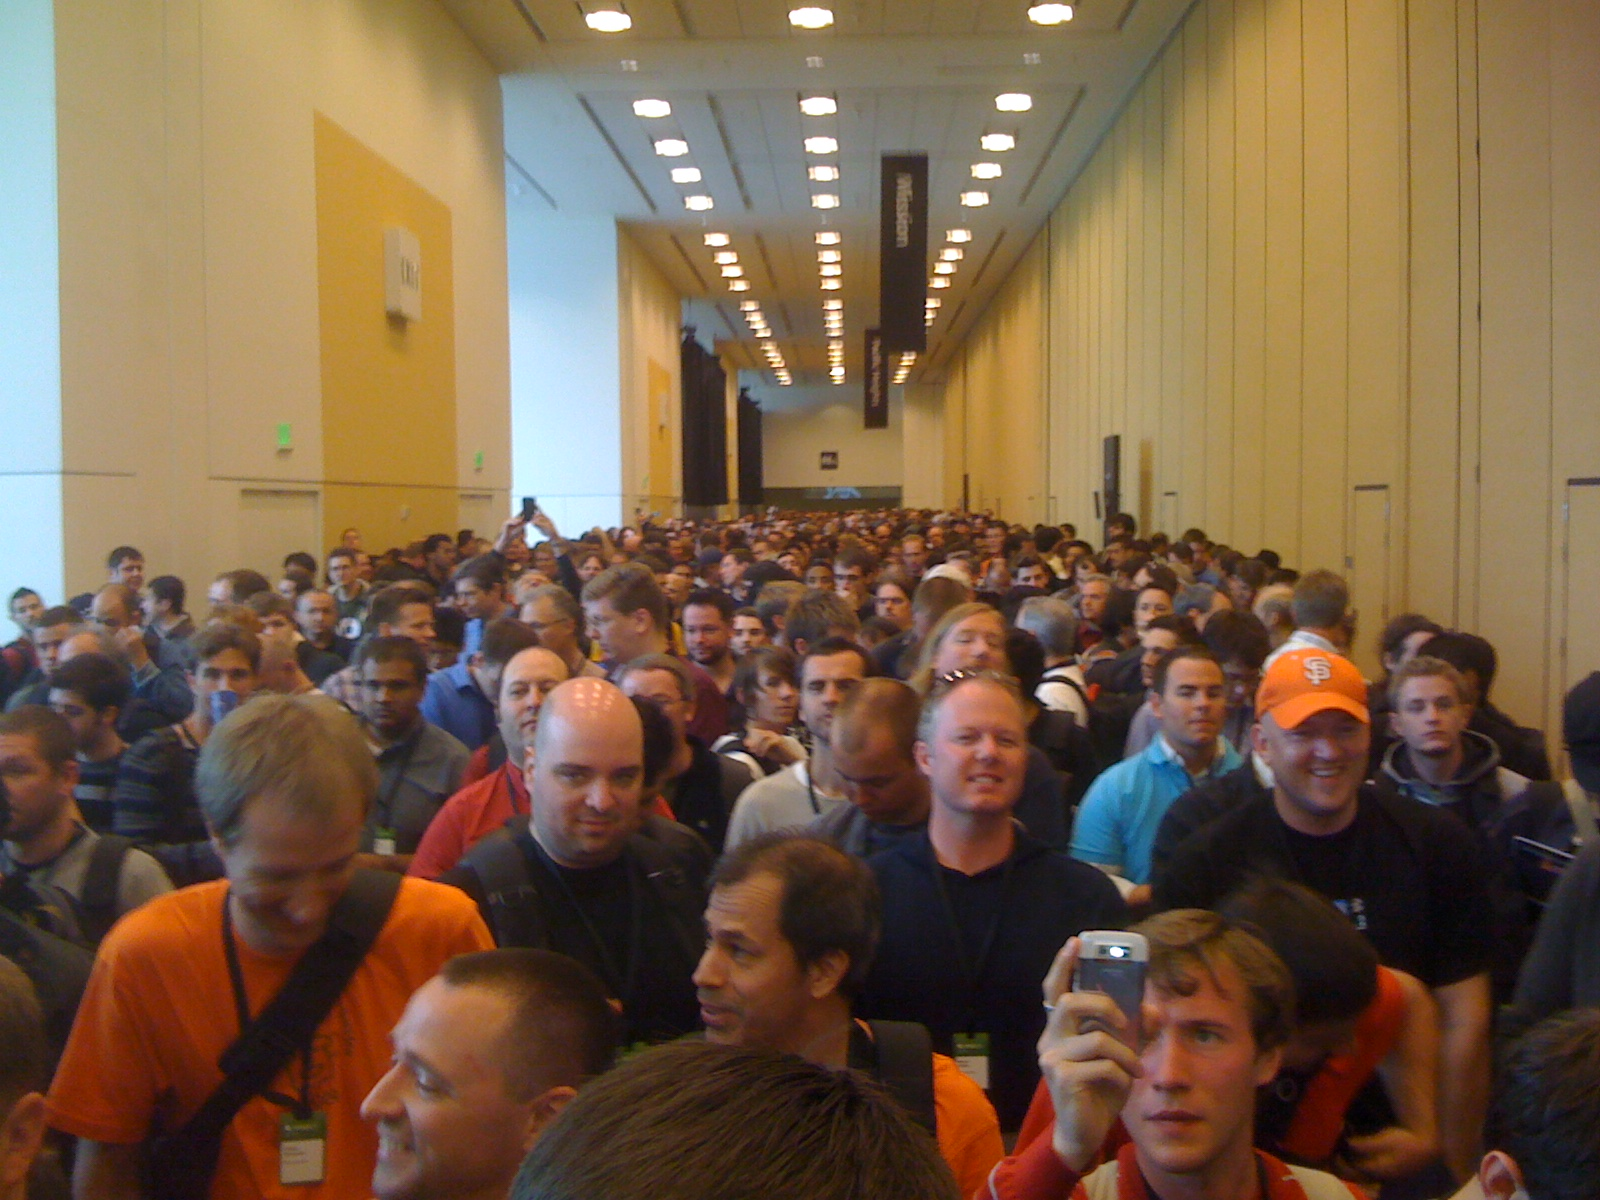 WWDC internal queue 2